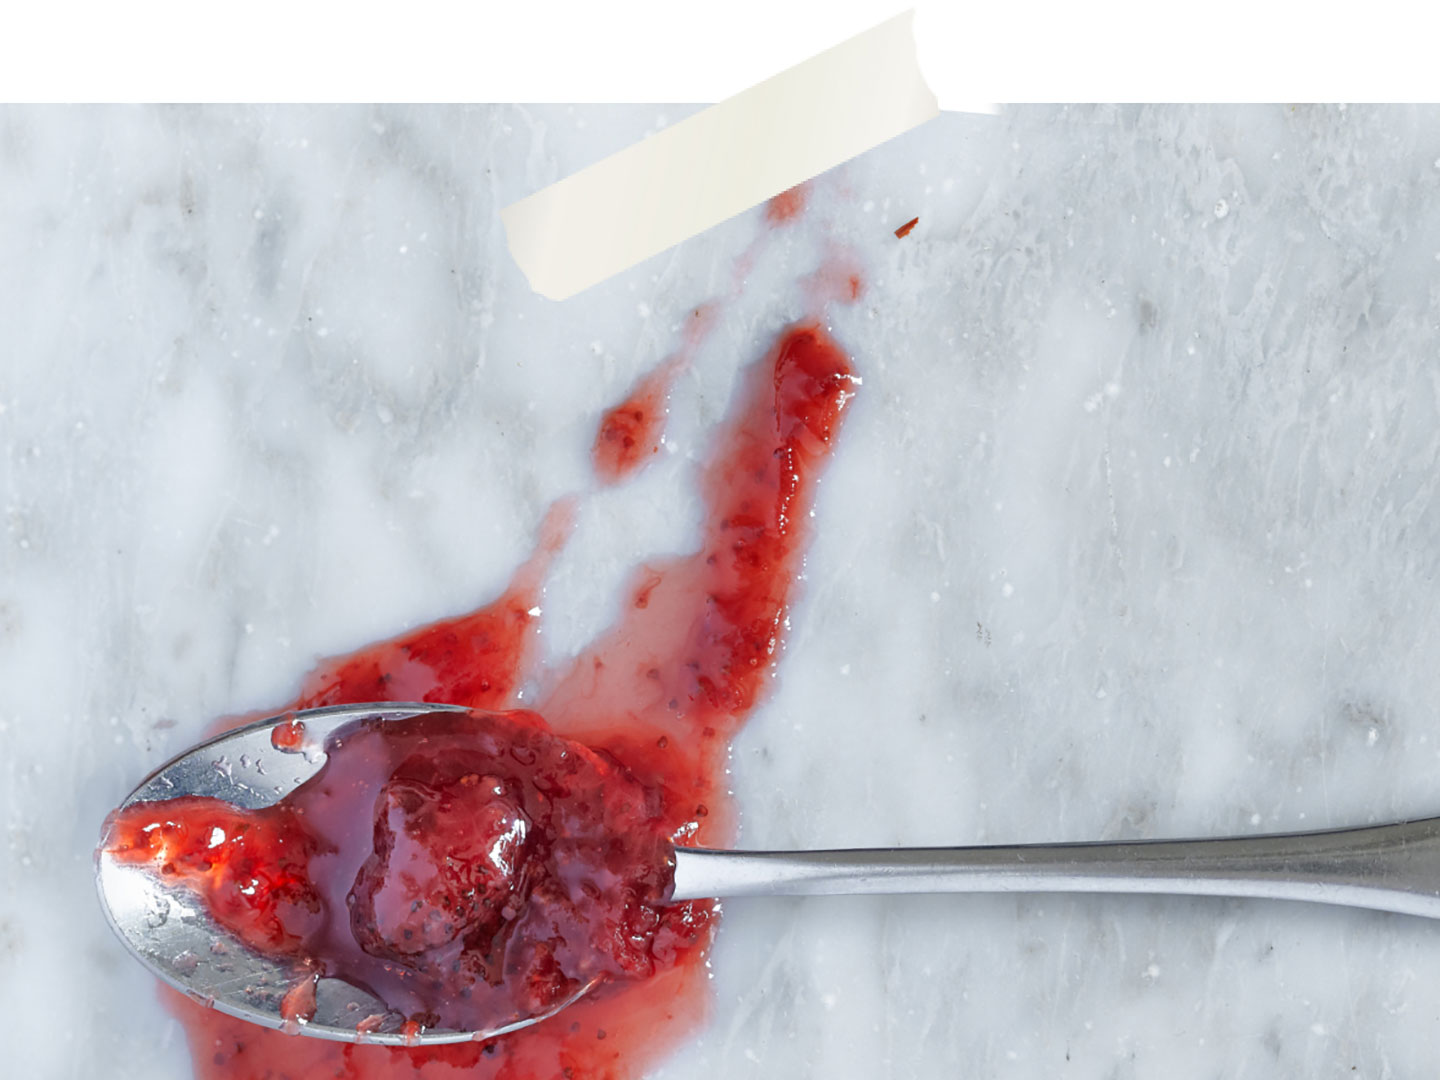 A spoon with jam on it.